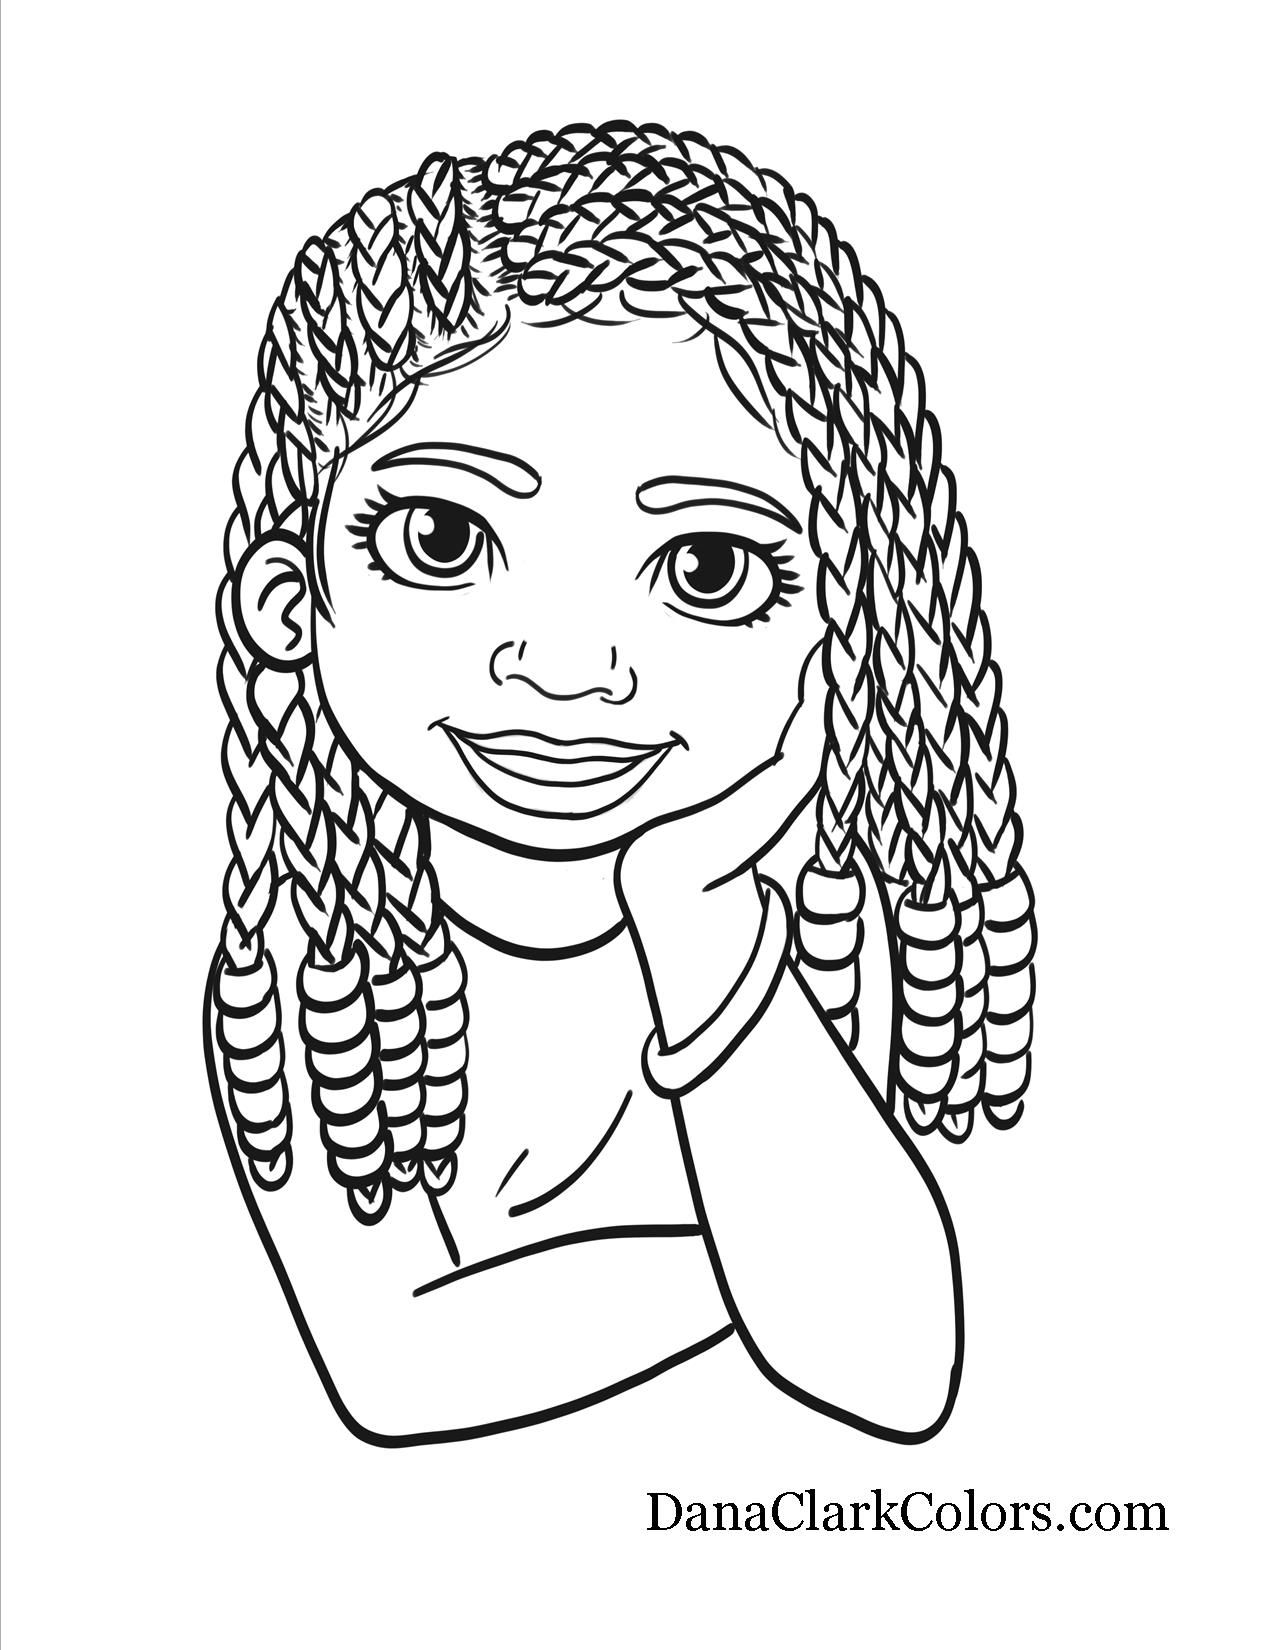 black american coloring pages - photo#27